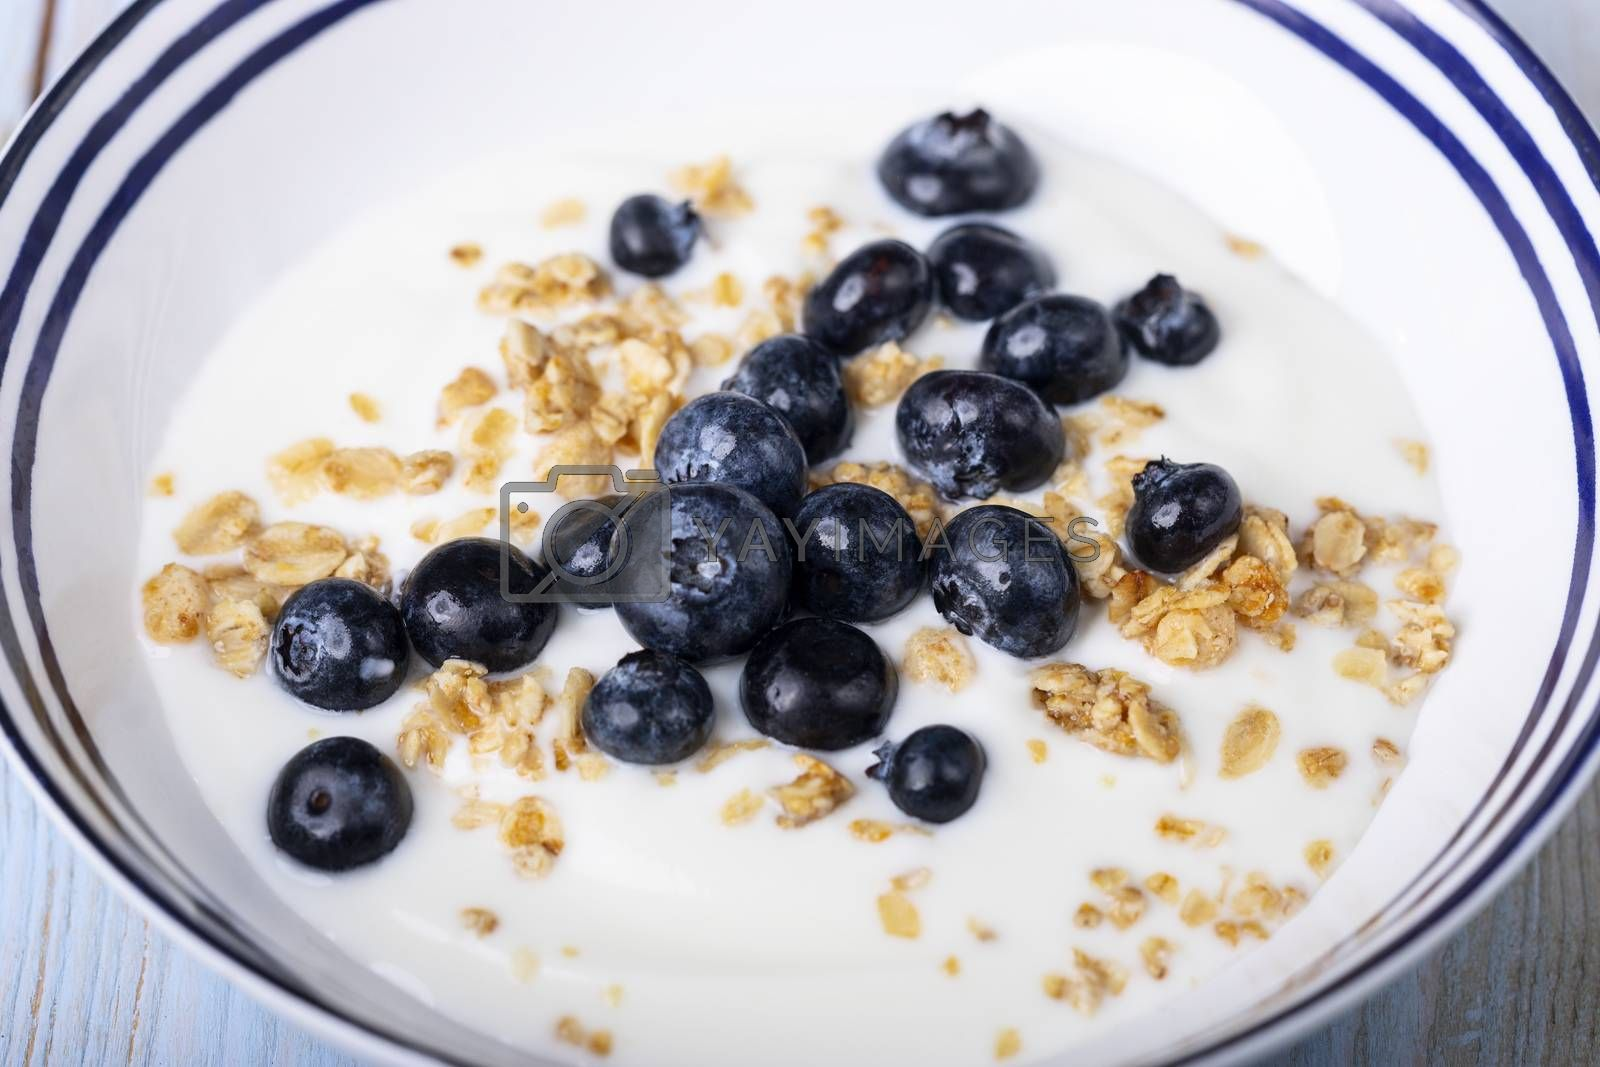 blueberries with muesli and yoghurt in a bowl